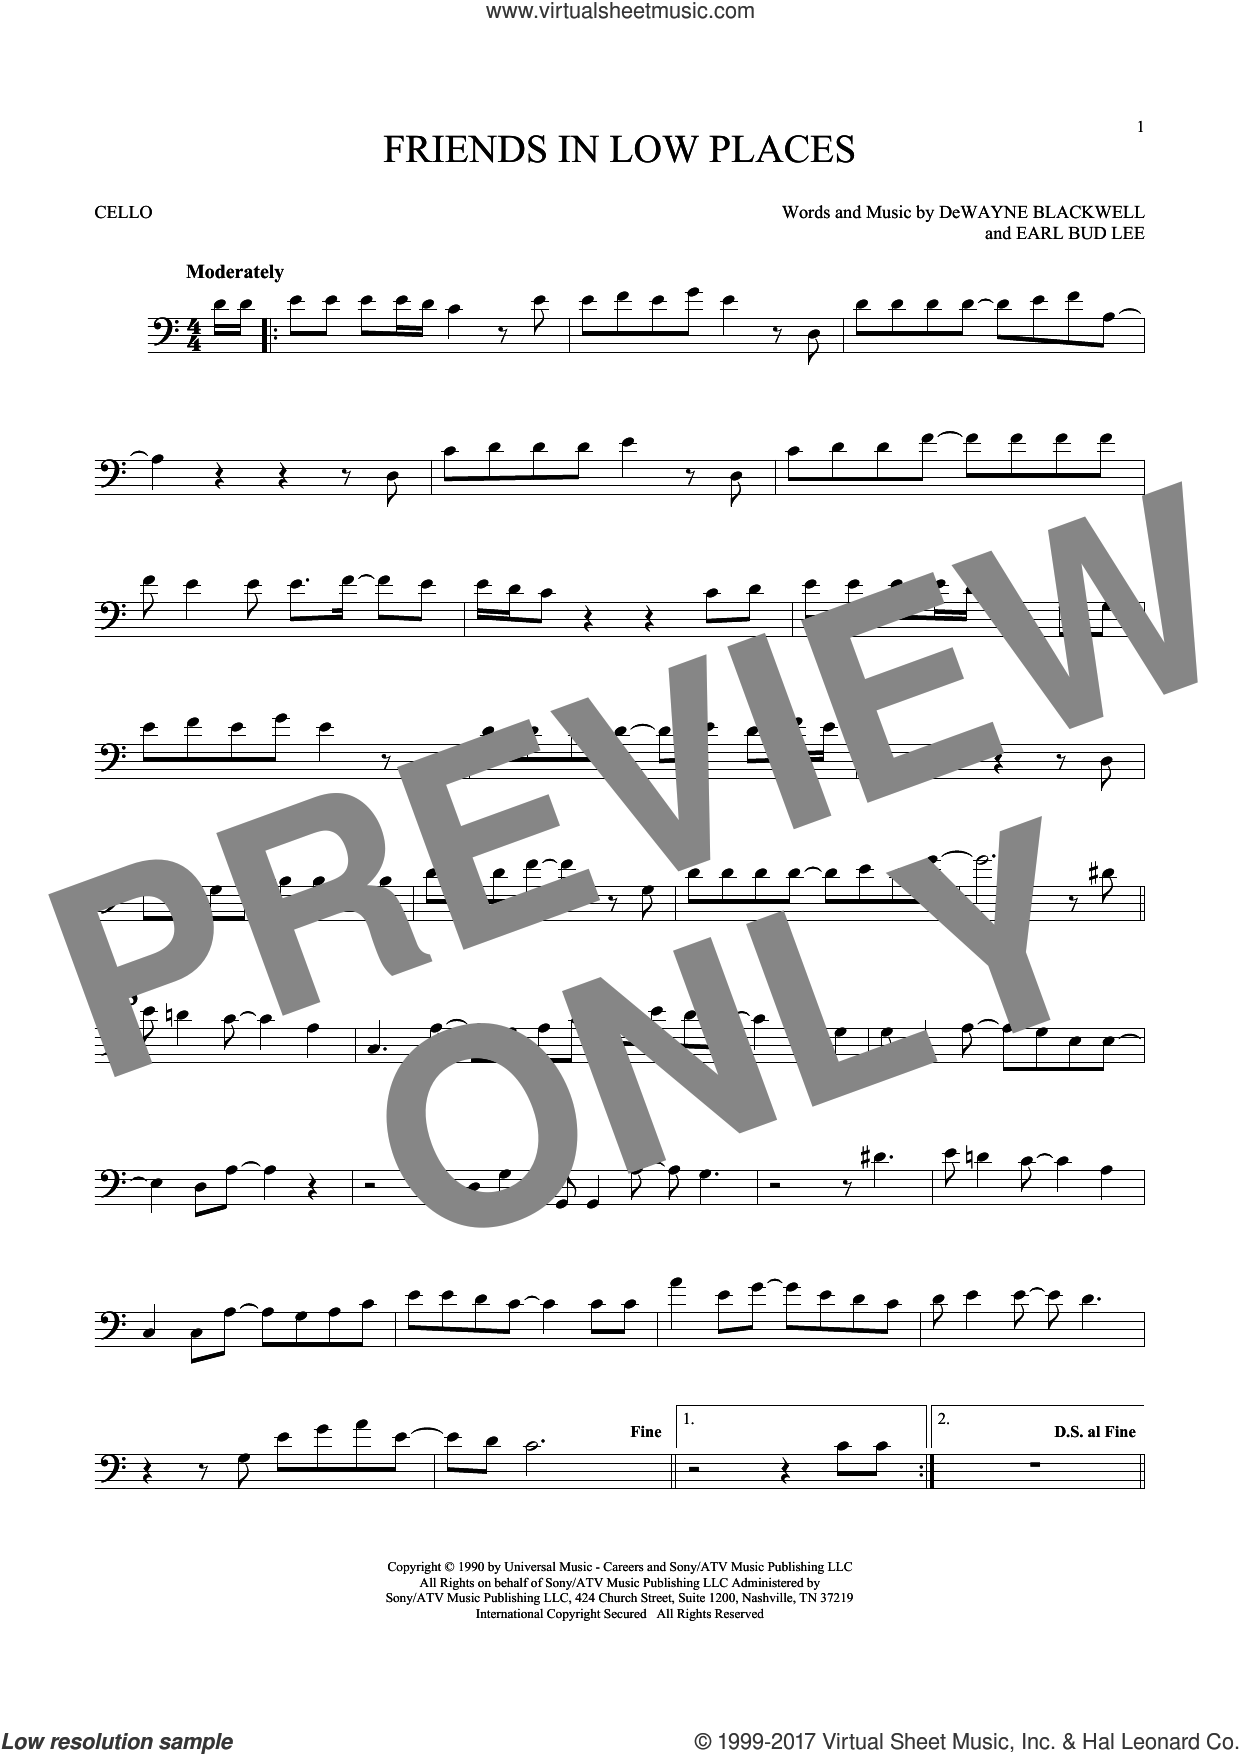 Friends In Low Places sheet music for cello solo by Earl Bud Lee, Garth Brooks and DeWayne Blackwell. Score Image Preview.